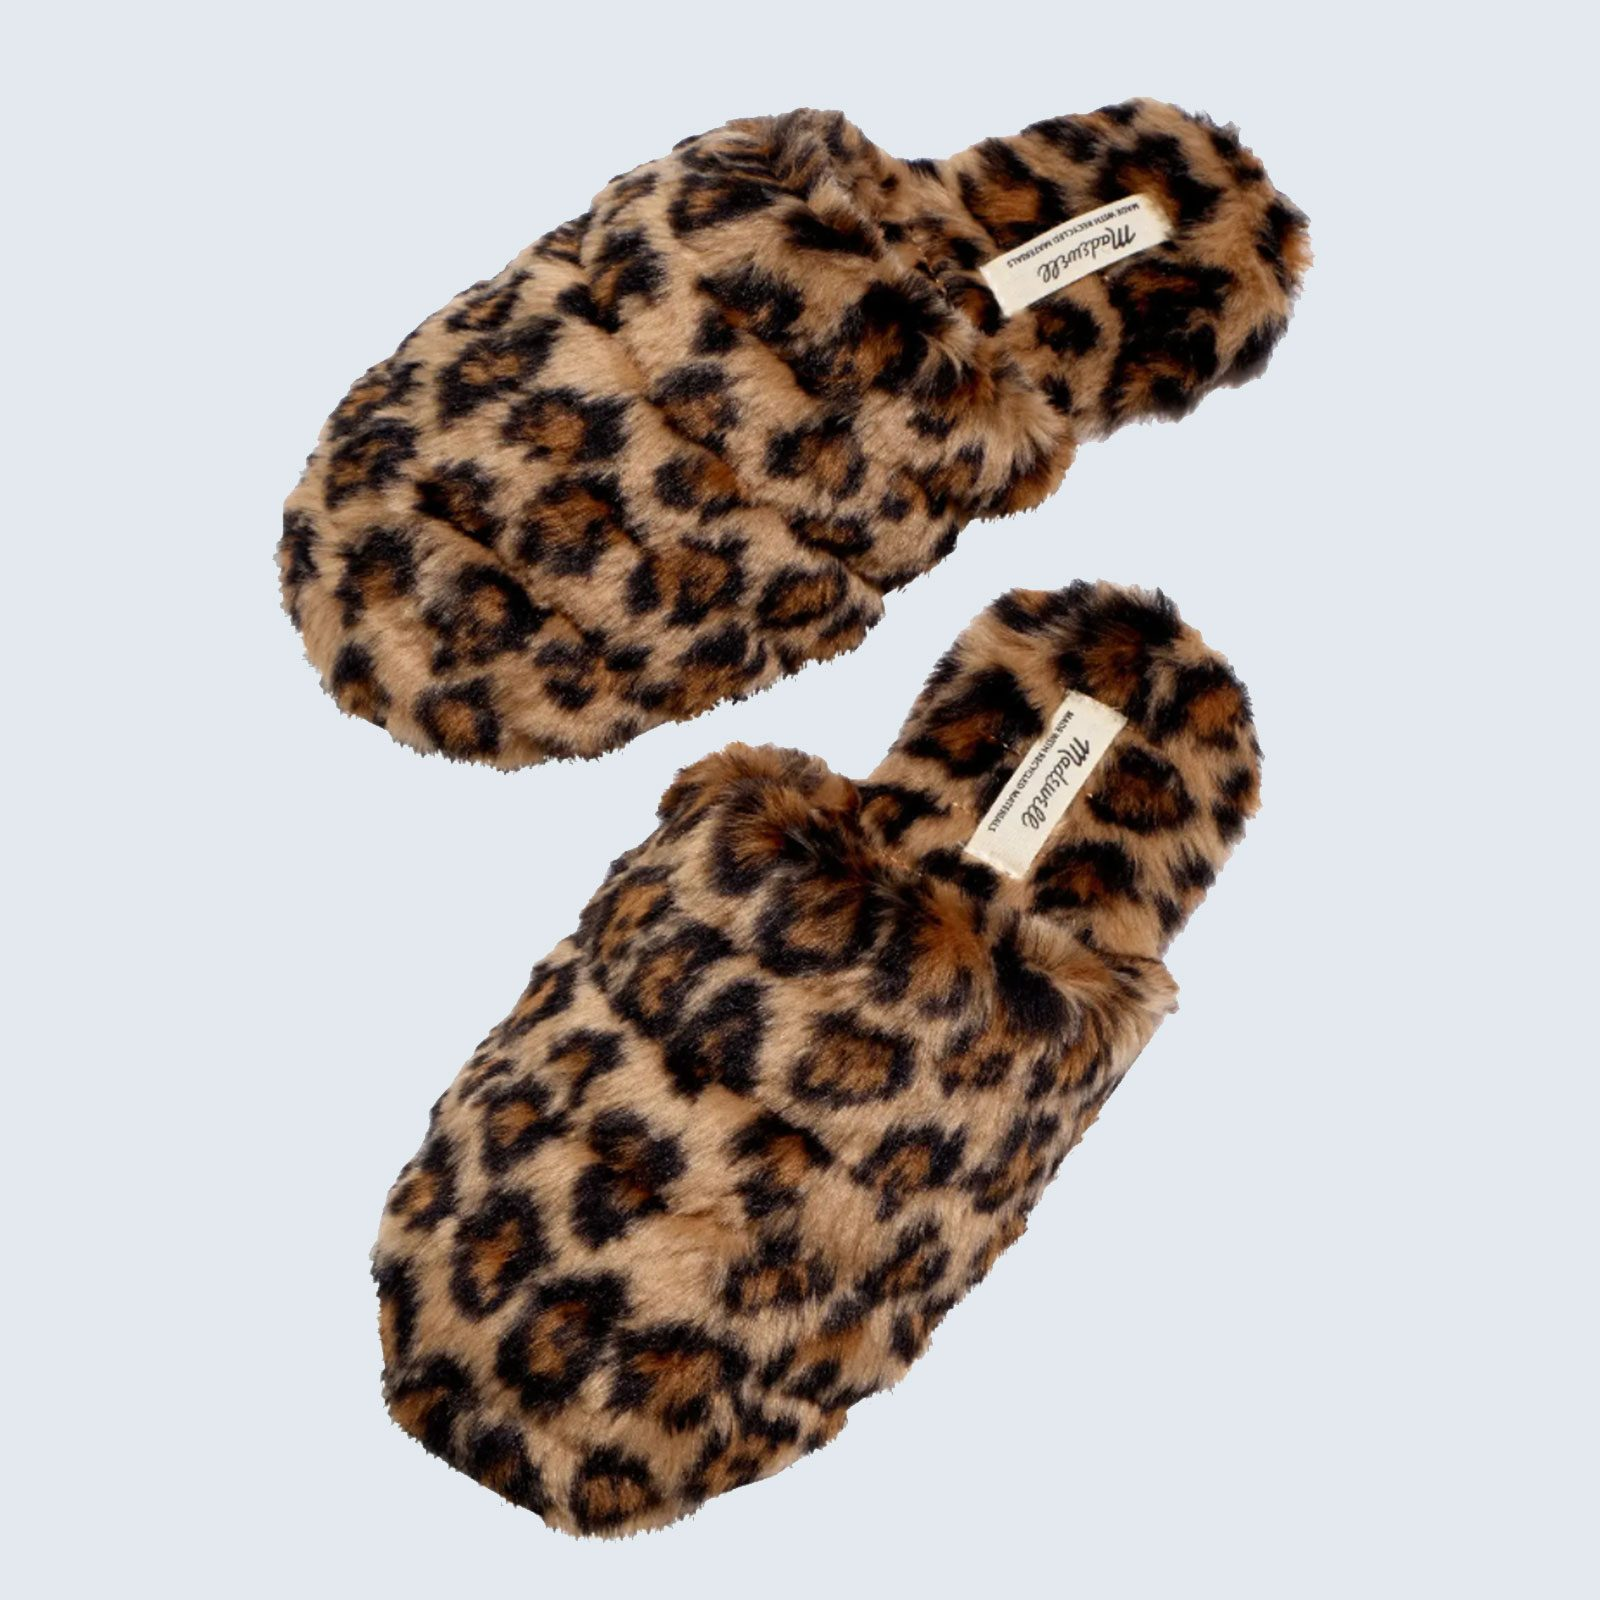 Best eco-friendly slippers: Madewell Leopard Recycled Faux Fur Slipper